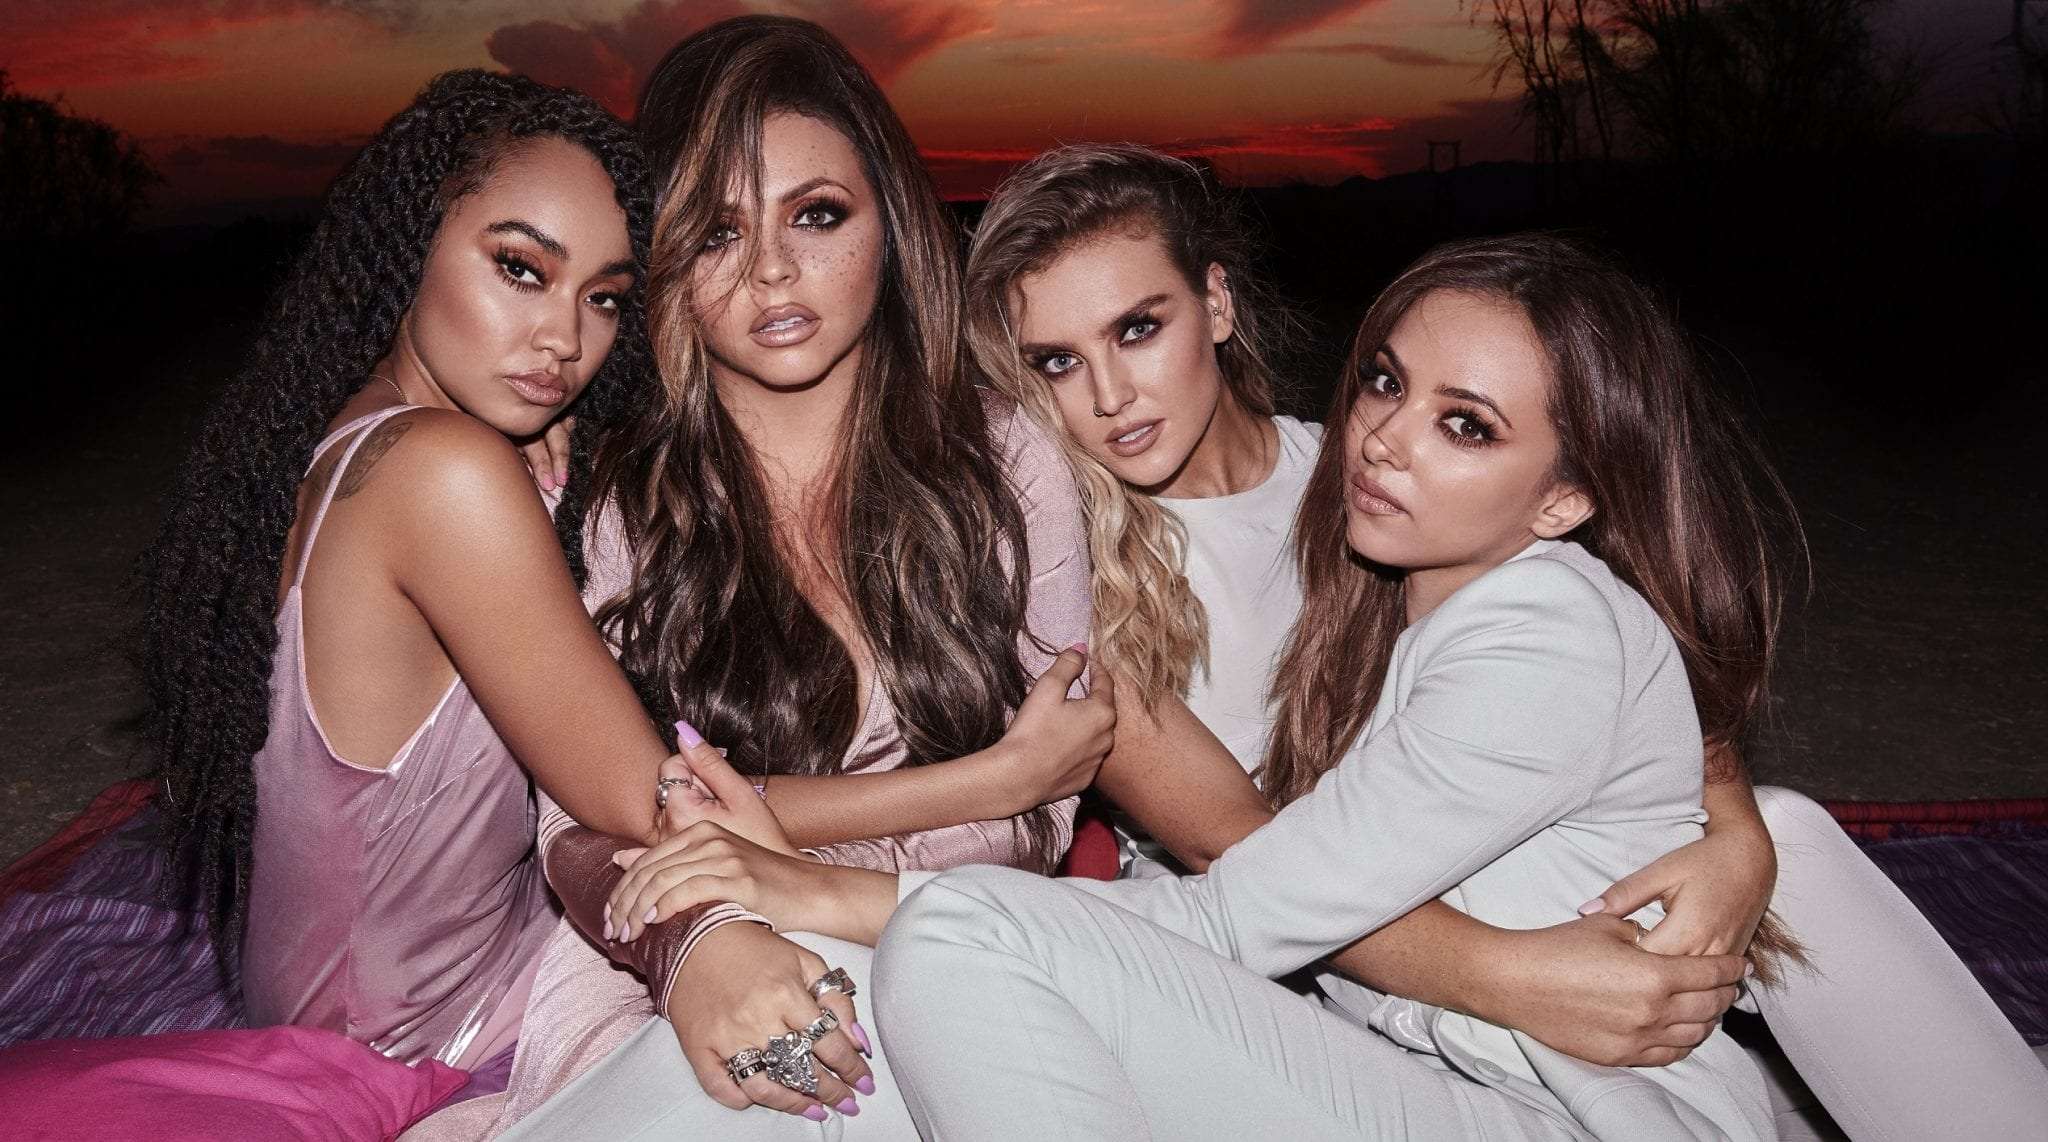 500 EXTRA TICKETS GO ON SALE FOR LITTLE MIX'S SCARBOROUGH OAT GIG